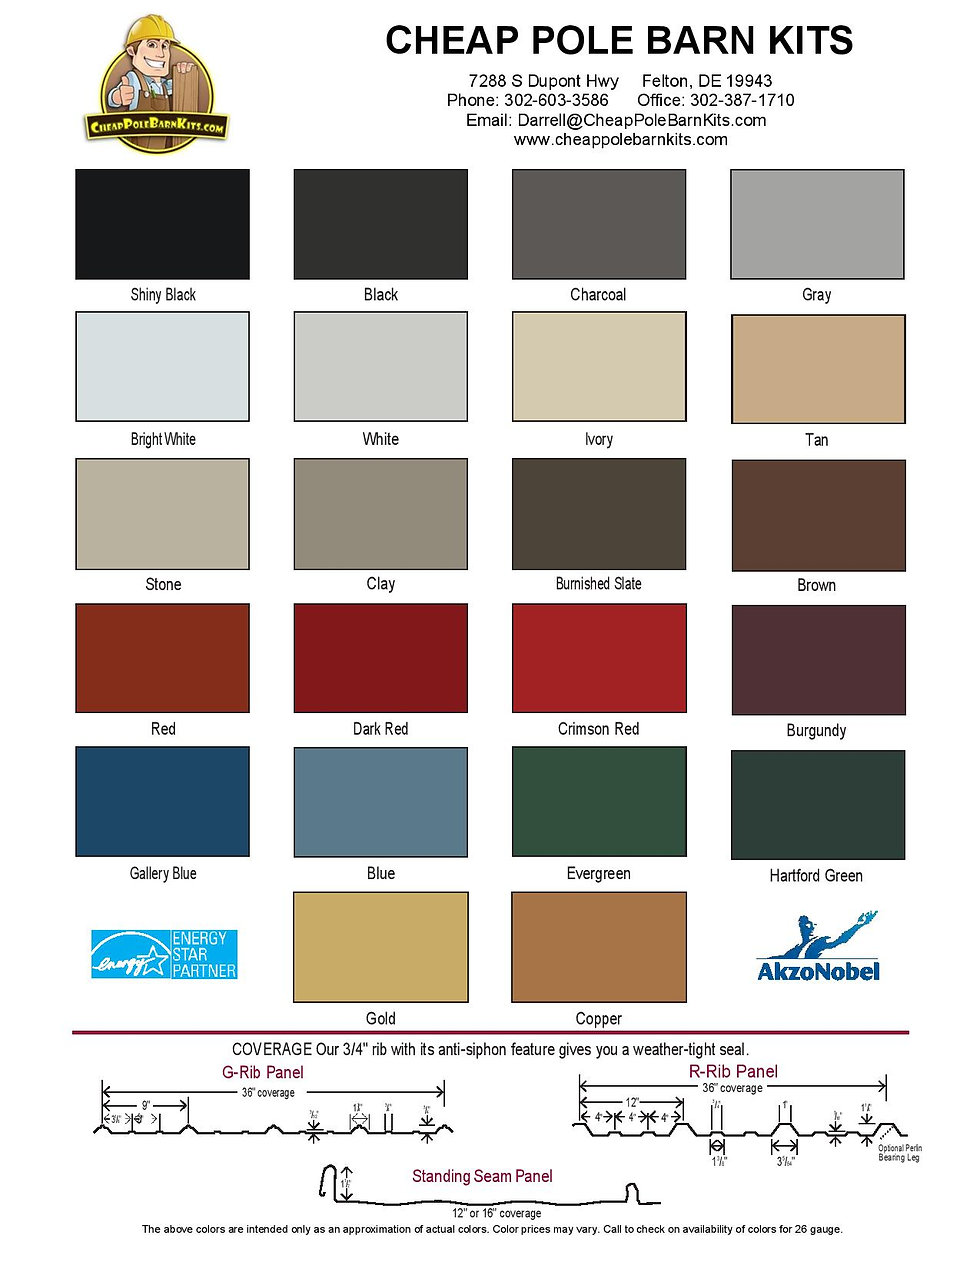 CPBK Color Chart-page-001.jpg